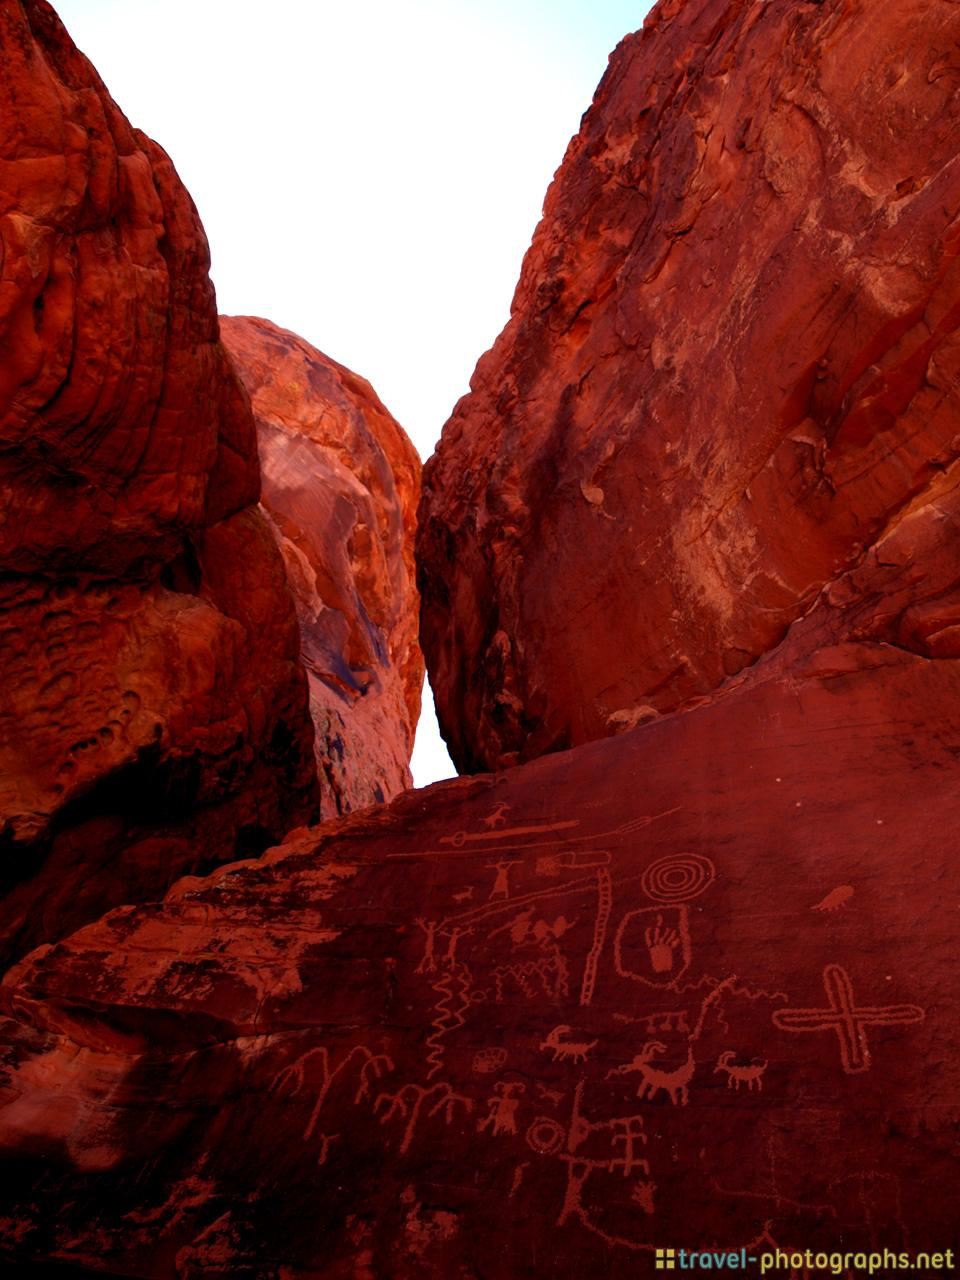 atlatl-rock-valley-of-fire-nevada